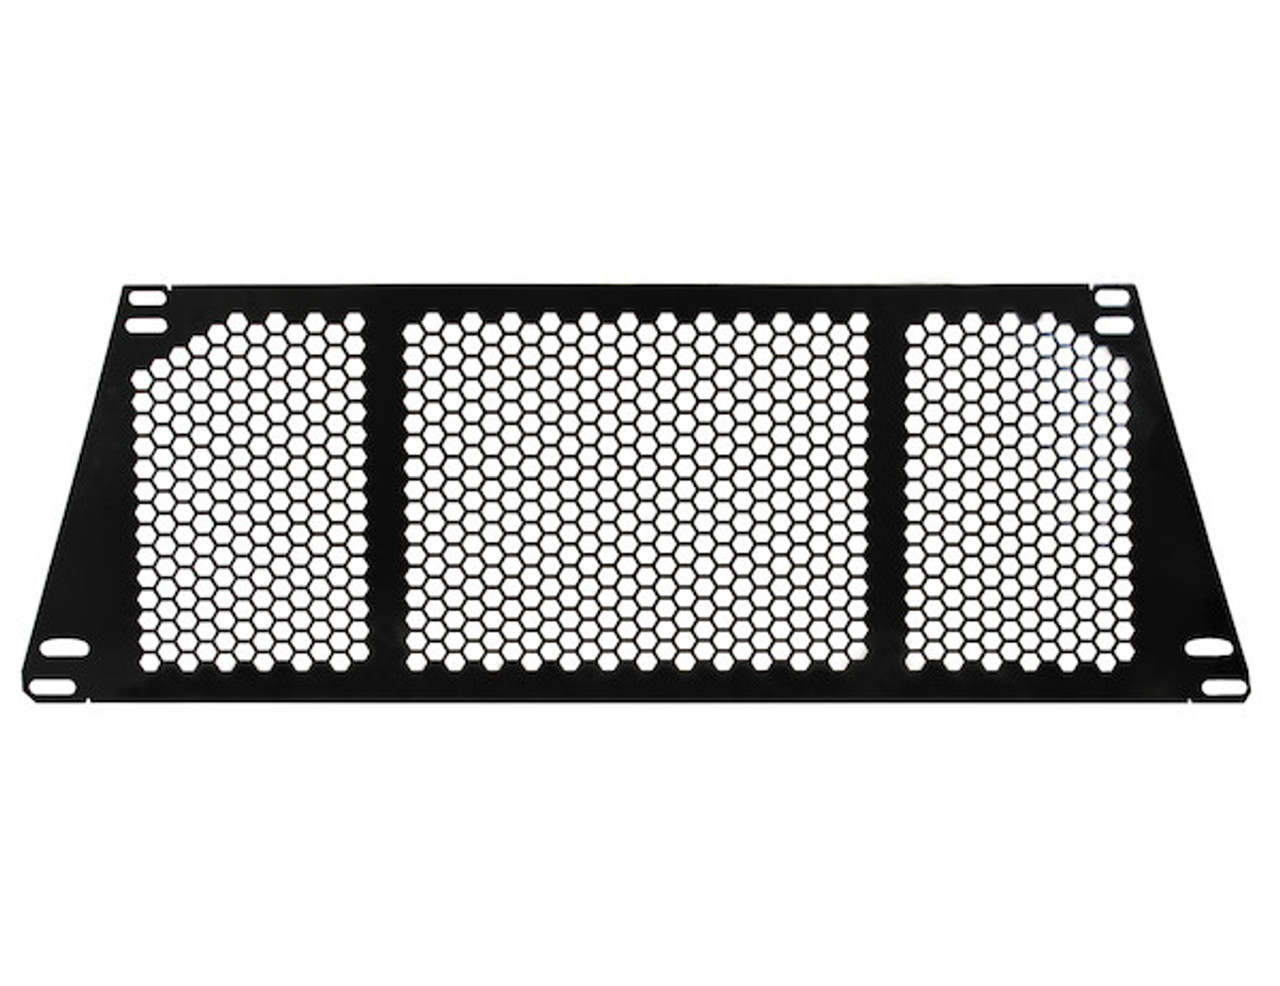 Buyers 1501105 Black Window Screen 24x70 Inch-Use With 1501100 Truck Ladder Rack